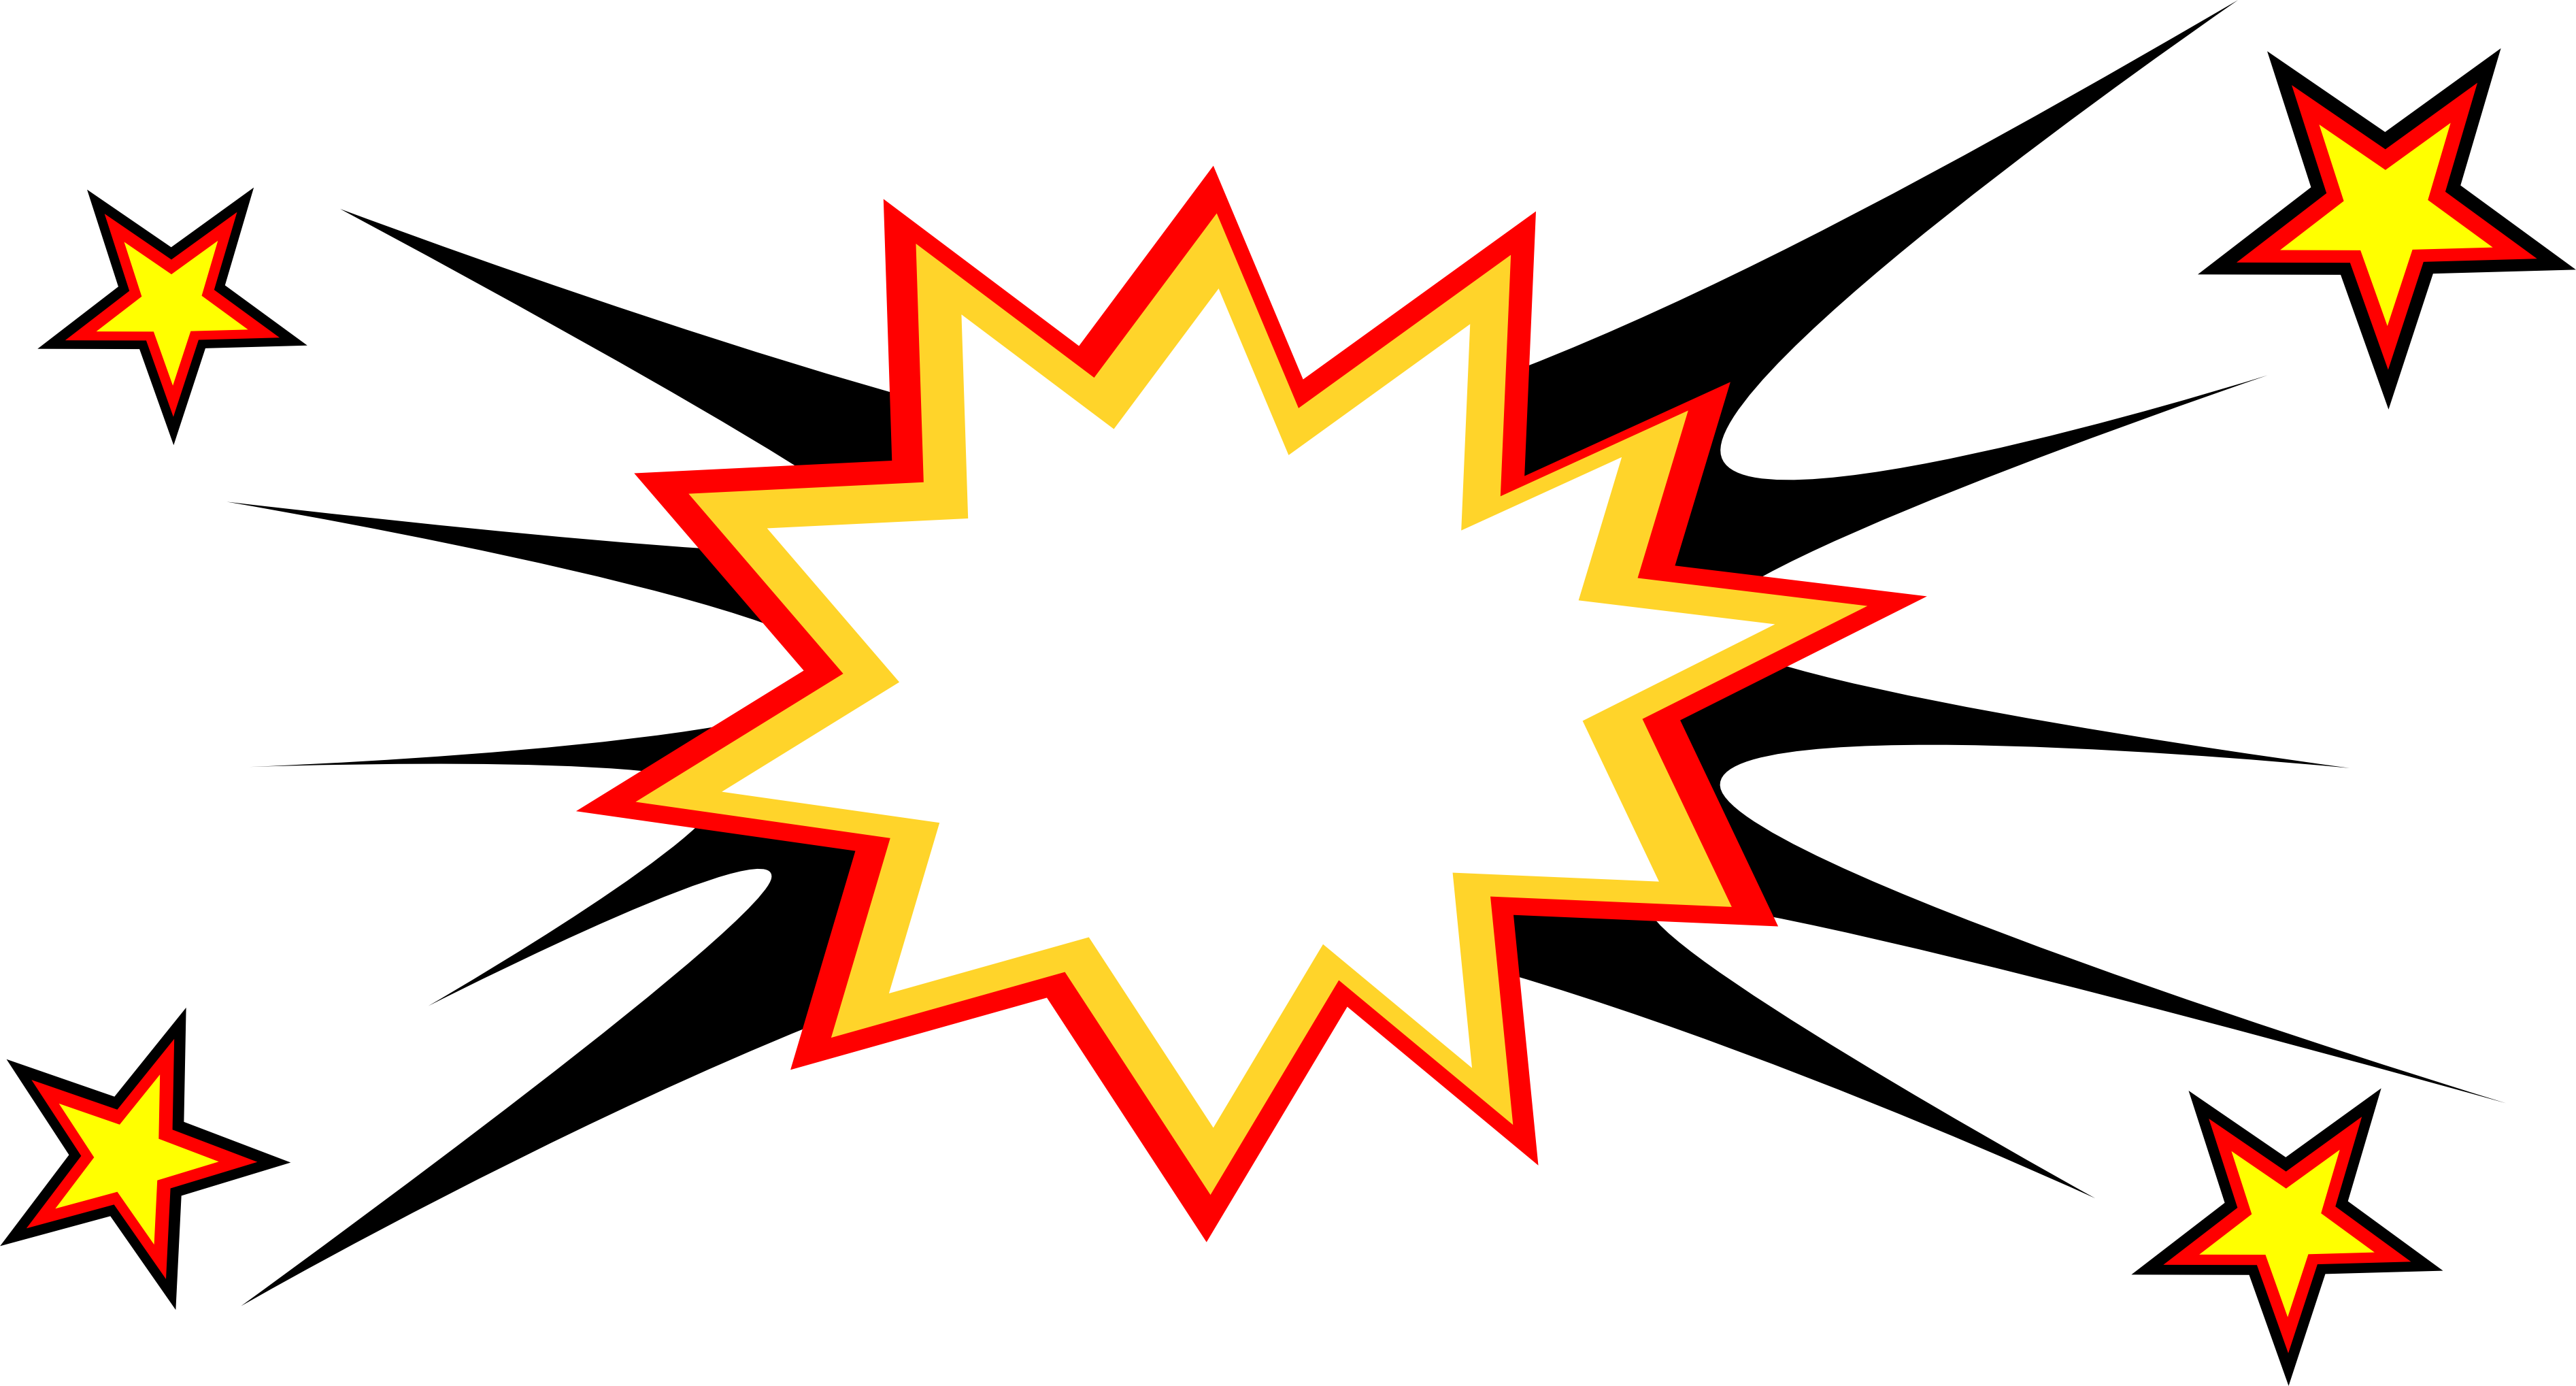 Free Download Png And Vector: 20 Comic Boom Explosion Vector (PNG Transparent, SVG) Vol